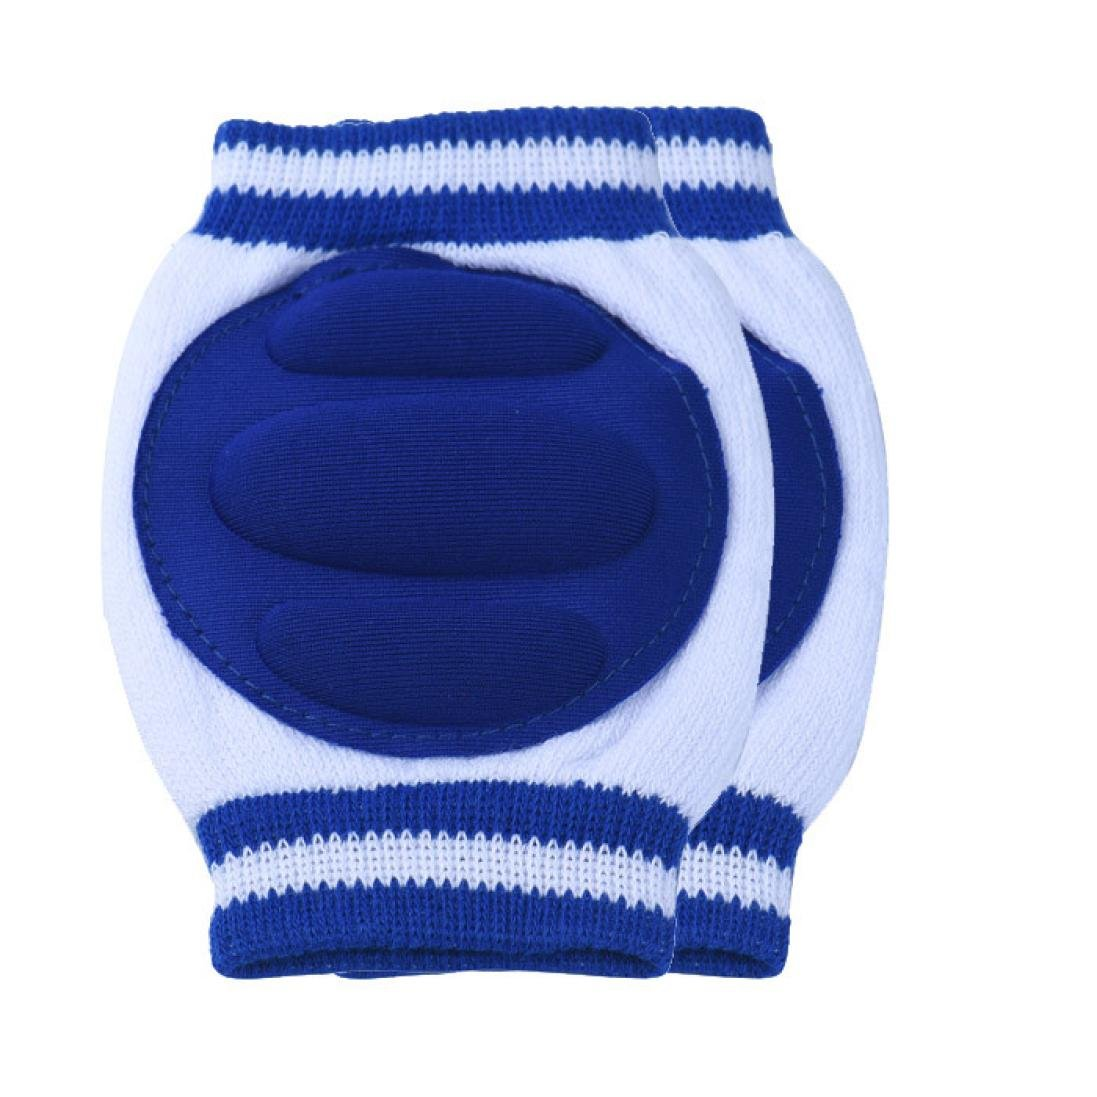 Fulltime(TM) 1 Pair Infant Toddler Baby Knee Pad Crawling Safety Protector Elbow Pads (DARK BLUE) F-U191